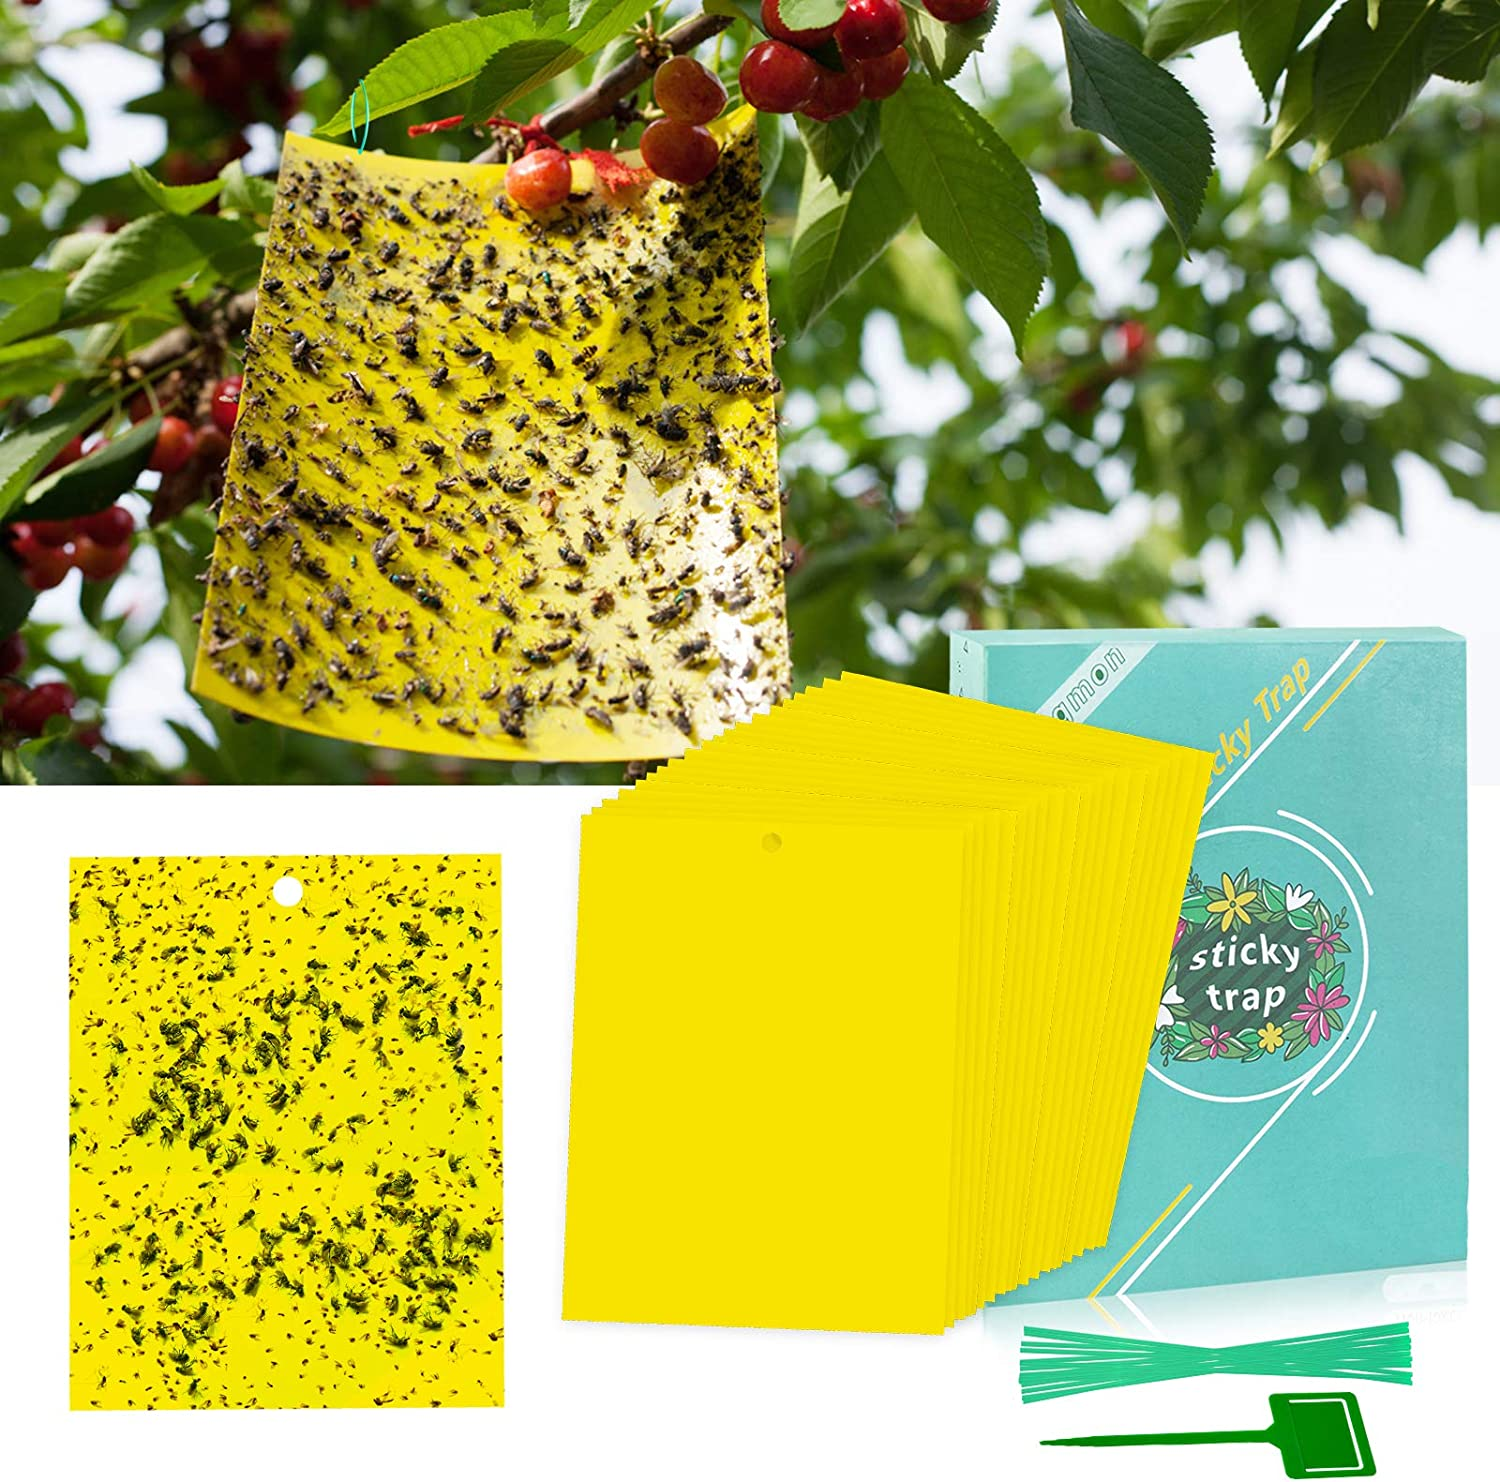 20 Pack 8x6 Inches Fruit Fly Trap Dual-Sided Sticky Traps for Outdoor Fruit Trees/ Potted Plants, Gnat Killer Waterproof and UV Resistant